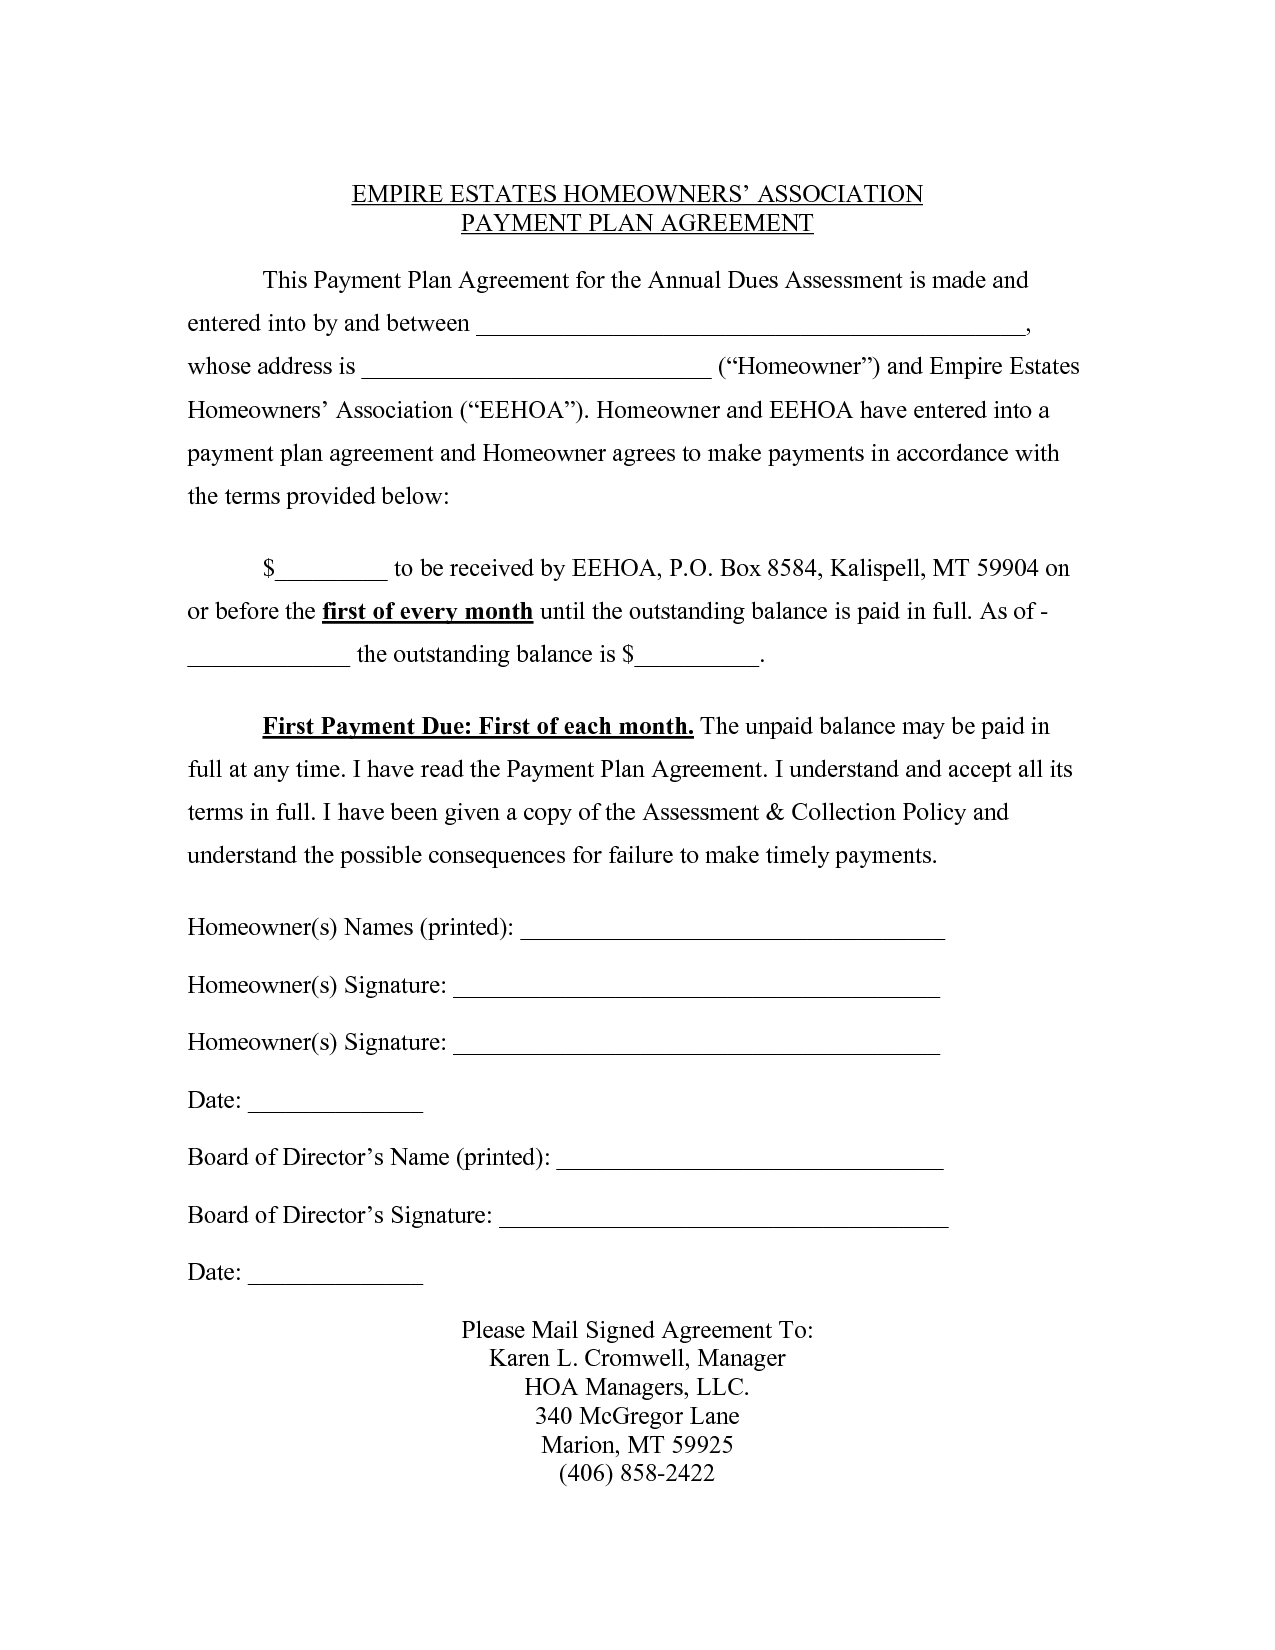 Loan Agreement Template Microsoft Word Templates Qpfwvy – Contract Templates for Word